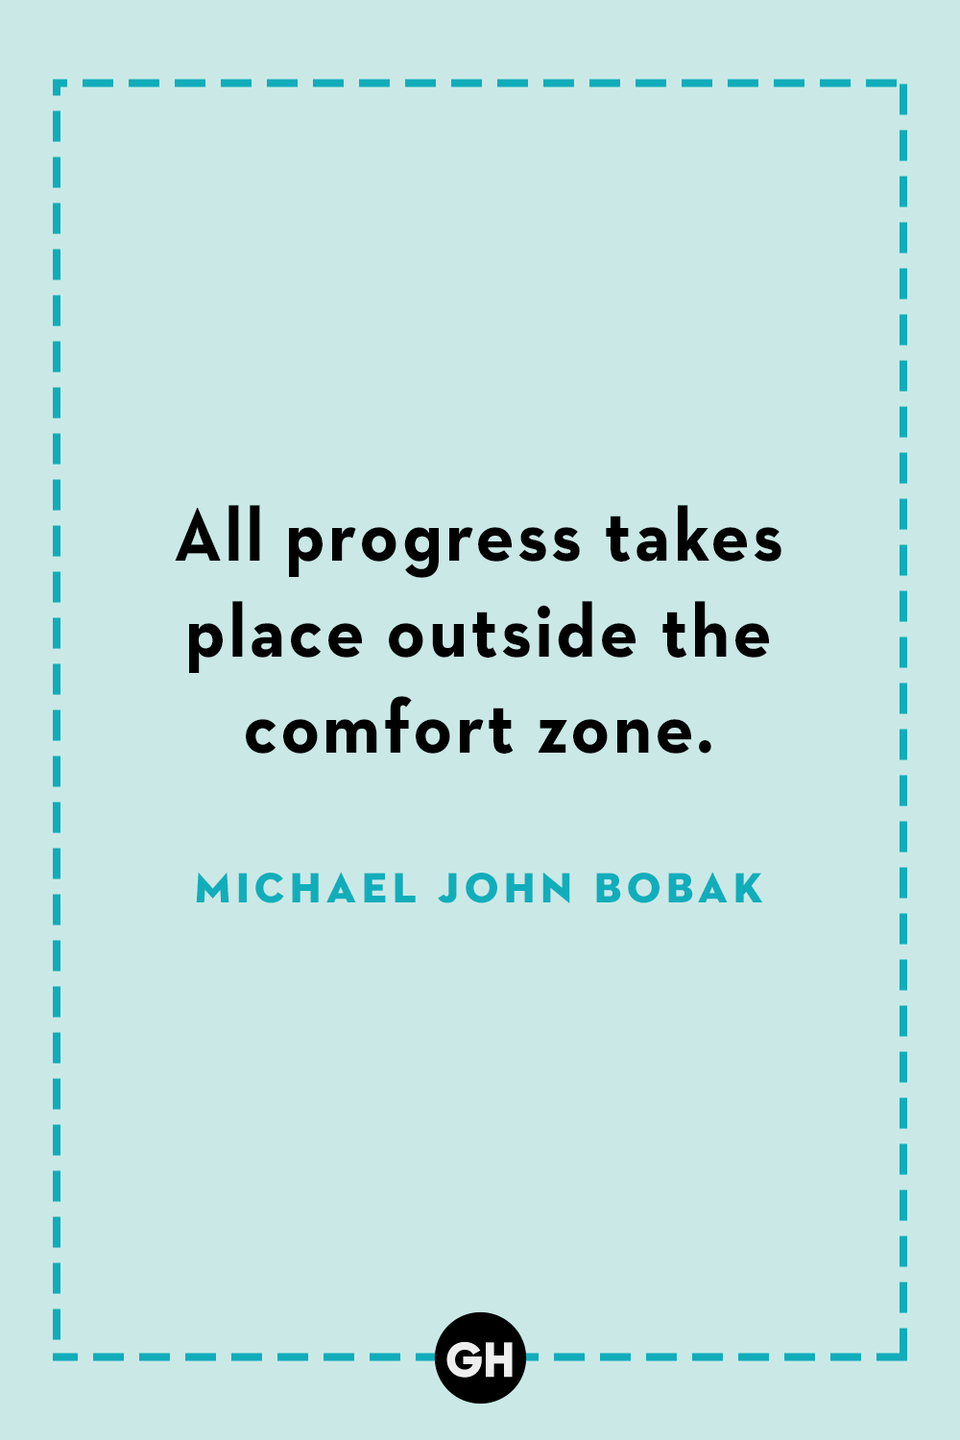 <p>All progress takes place outside the comfort zone.</p>